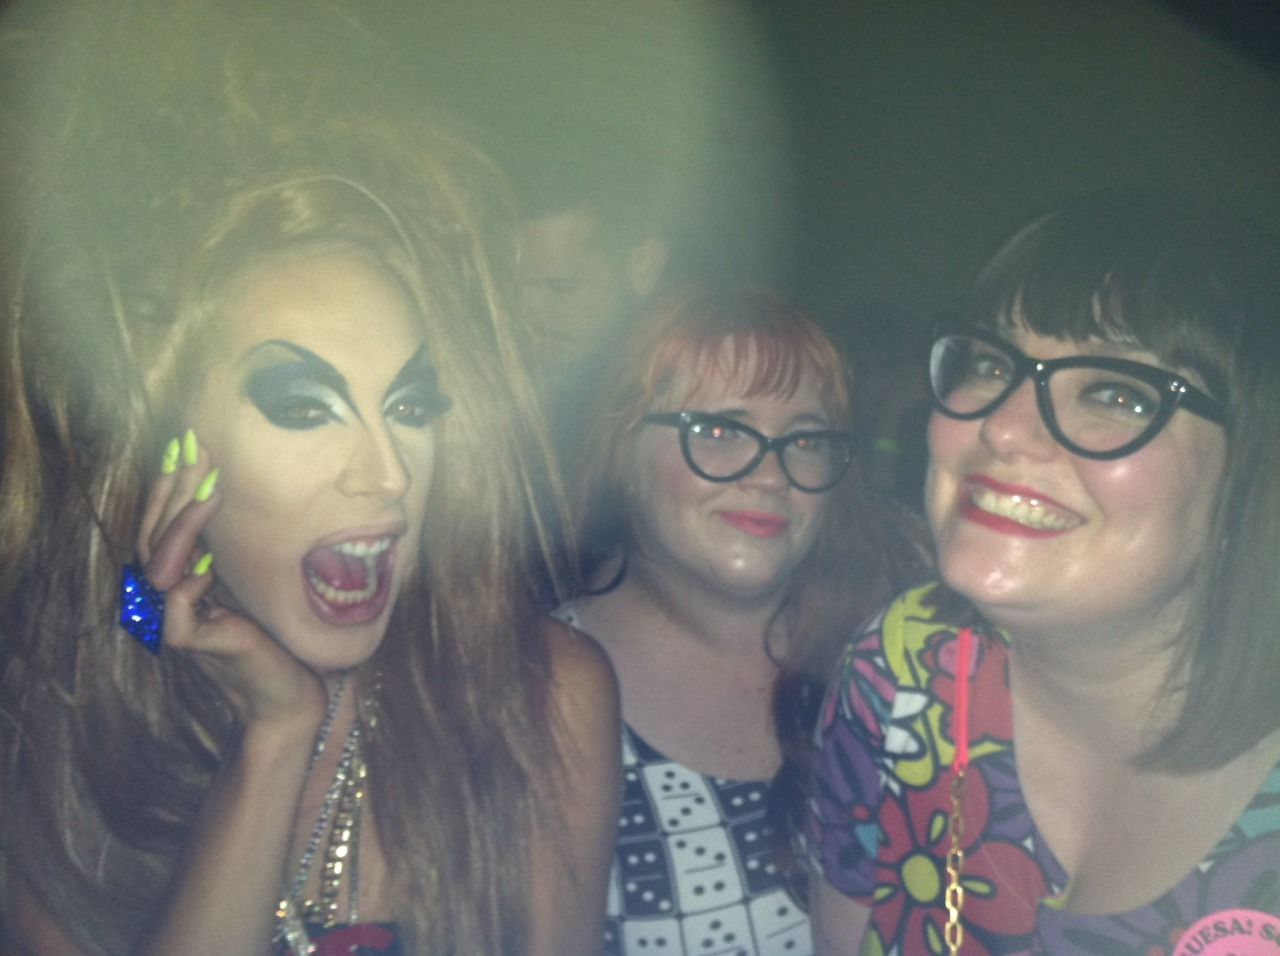 Met Alaska Thunderfuck and saw Jinkx Monsoon perform six songs last night with Nicole. Definitely one of the best things I've ever seen!